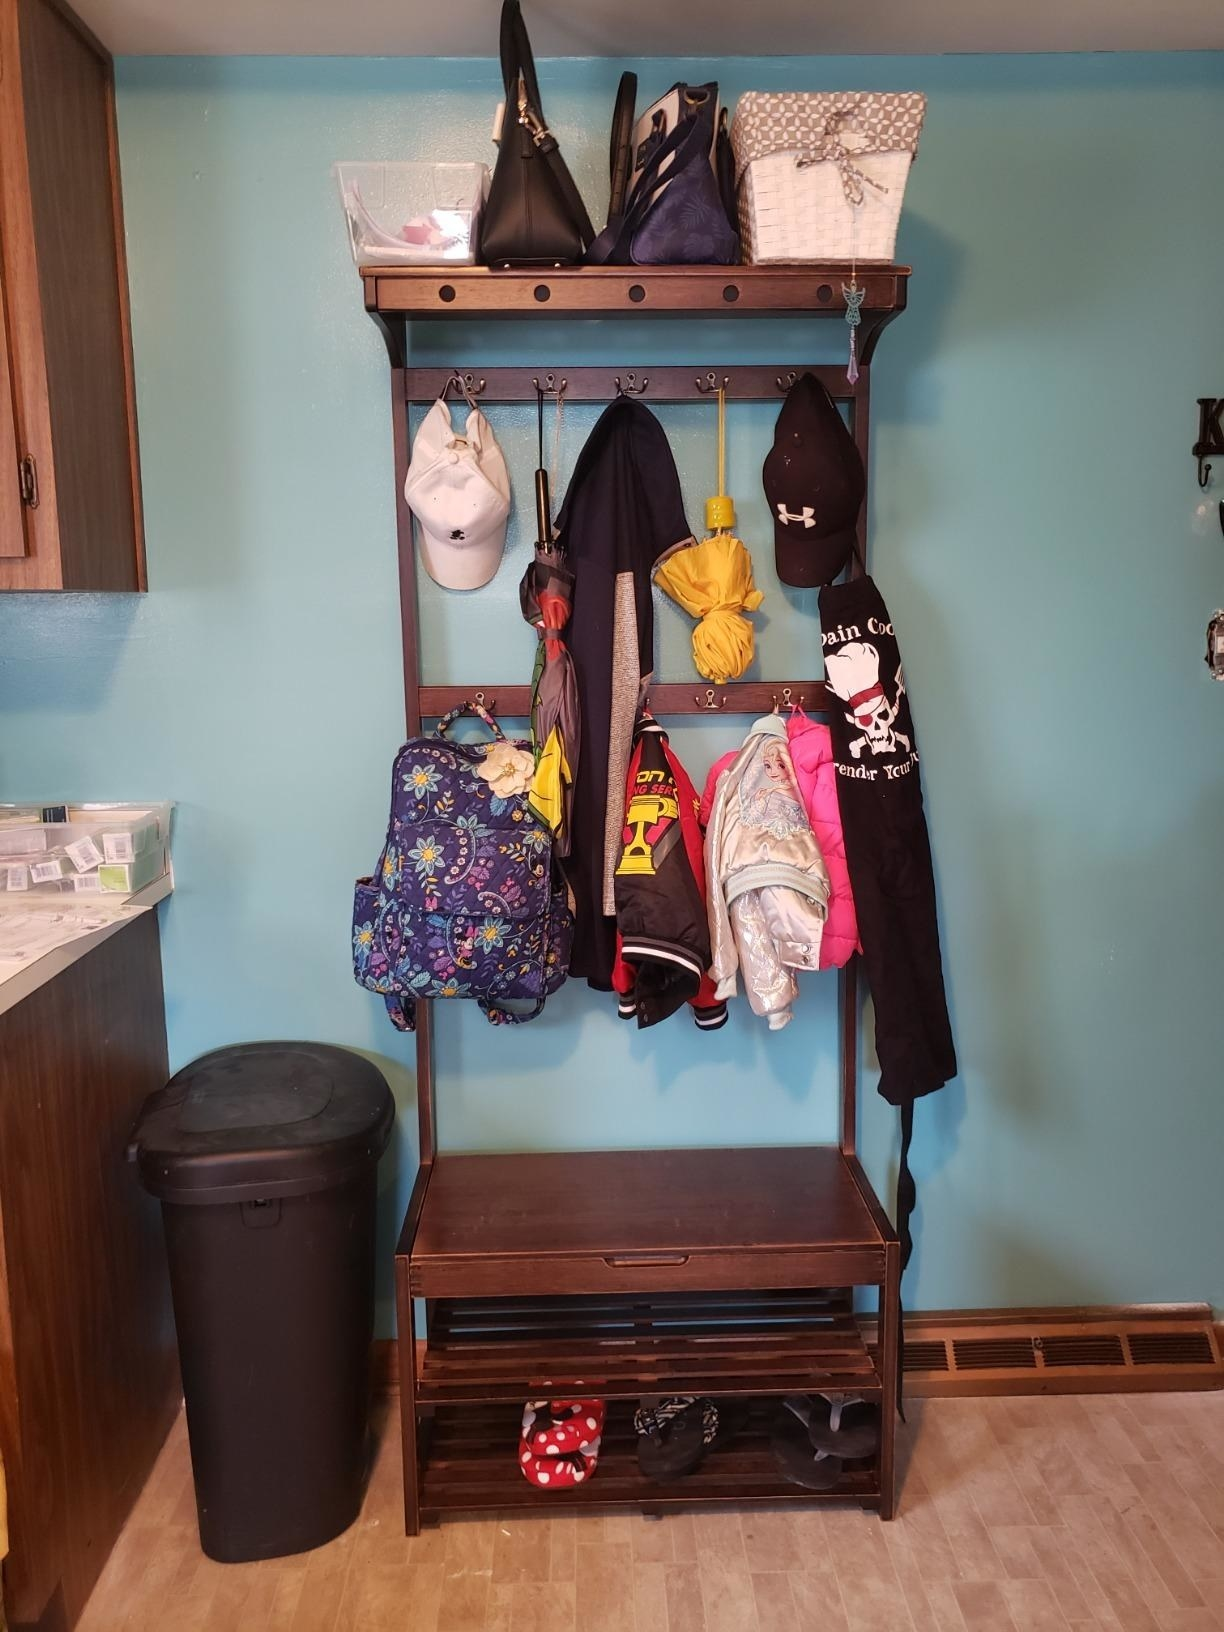 reviewer image of kids shoes, coats, and backpacks hanging from the SEIRIONE Bamboo Coat rack